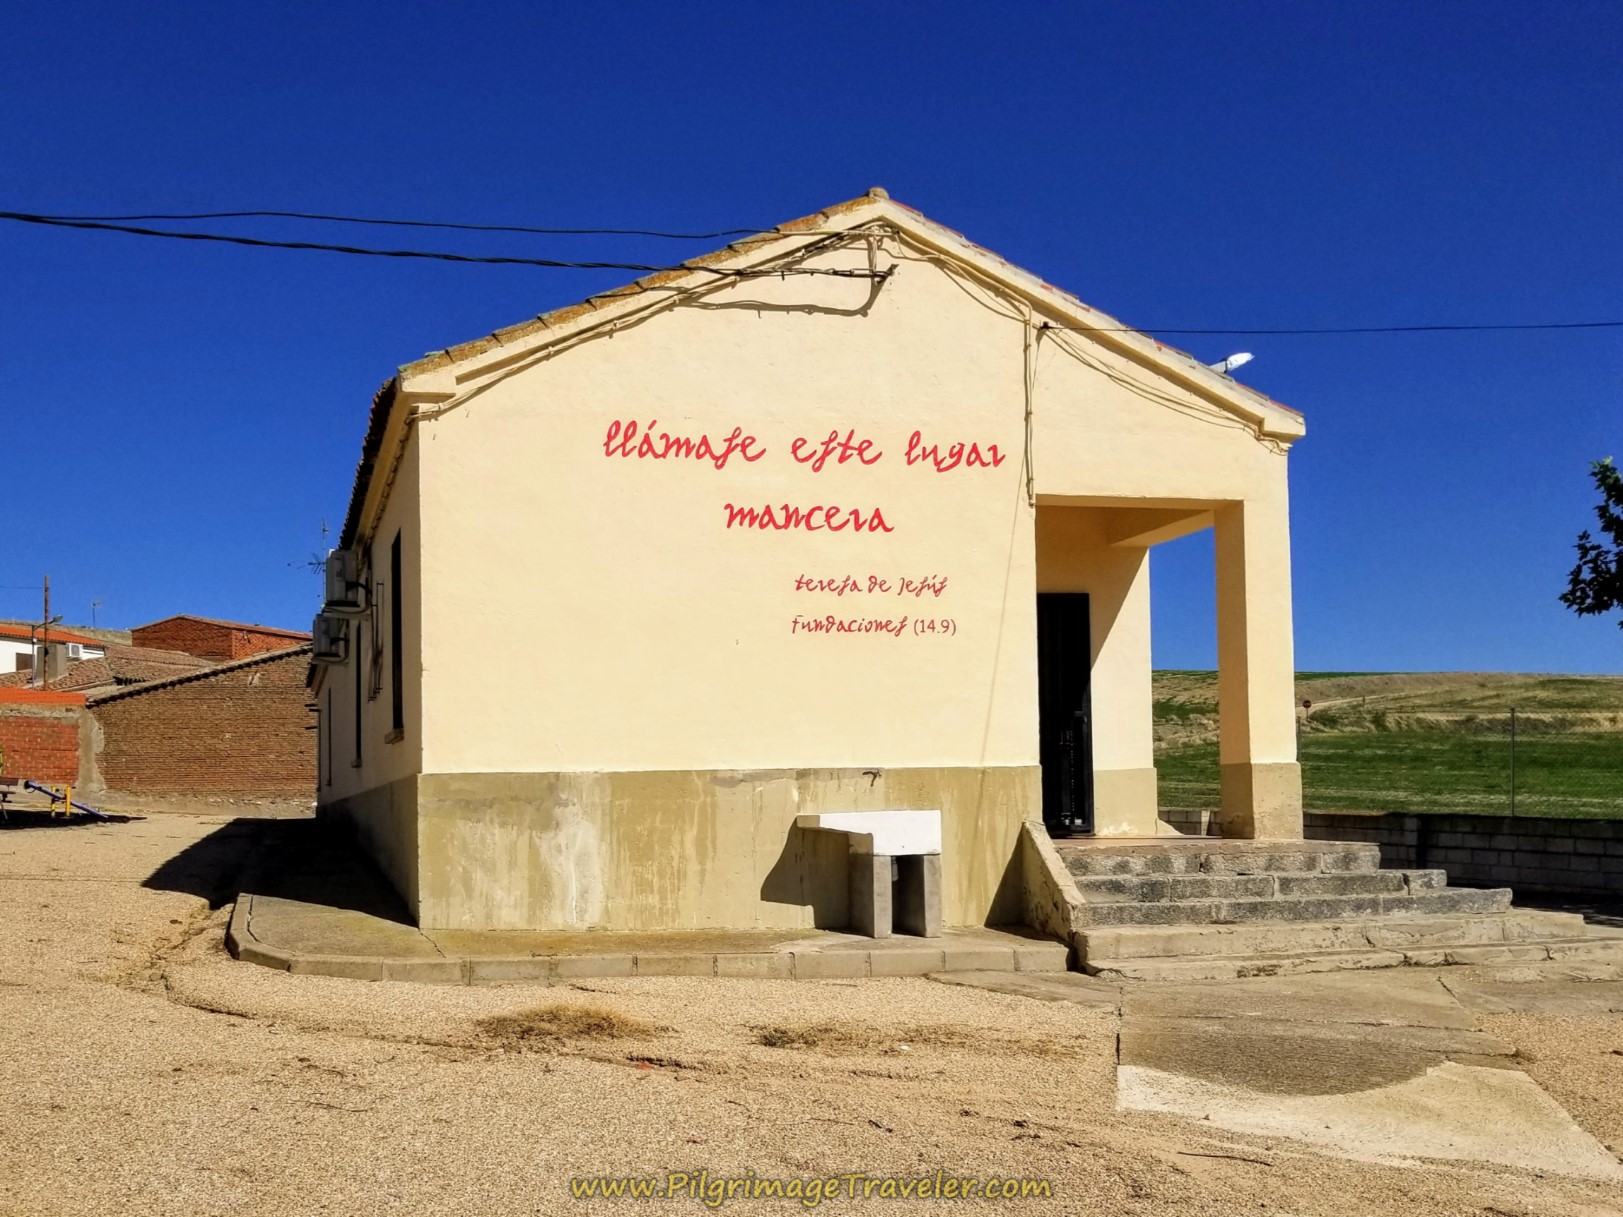 Entrance to the Albergue de Peregrinos de Santa Teresa